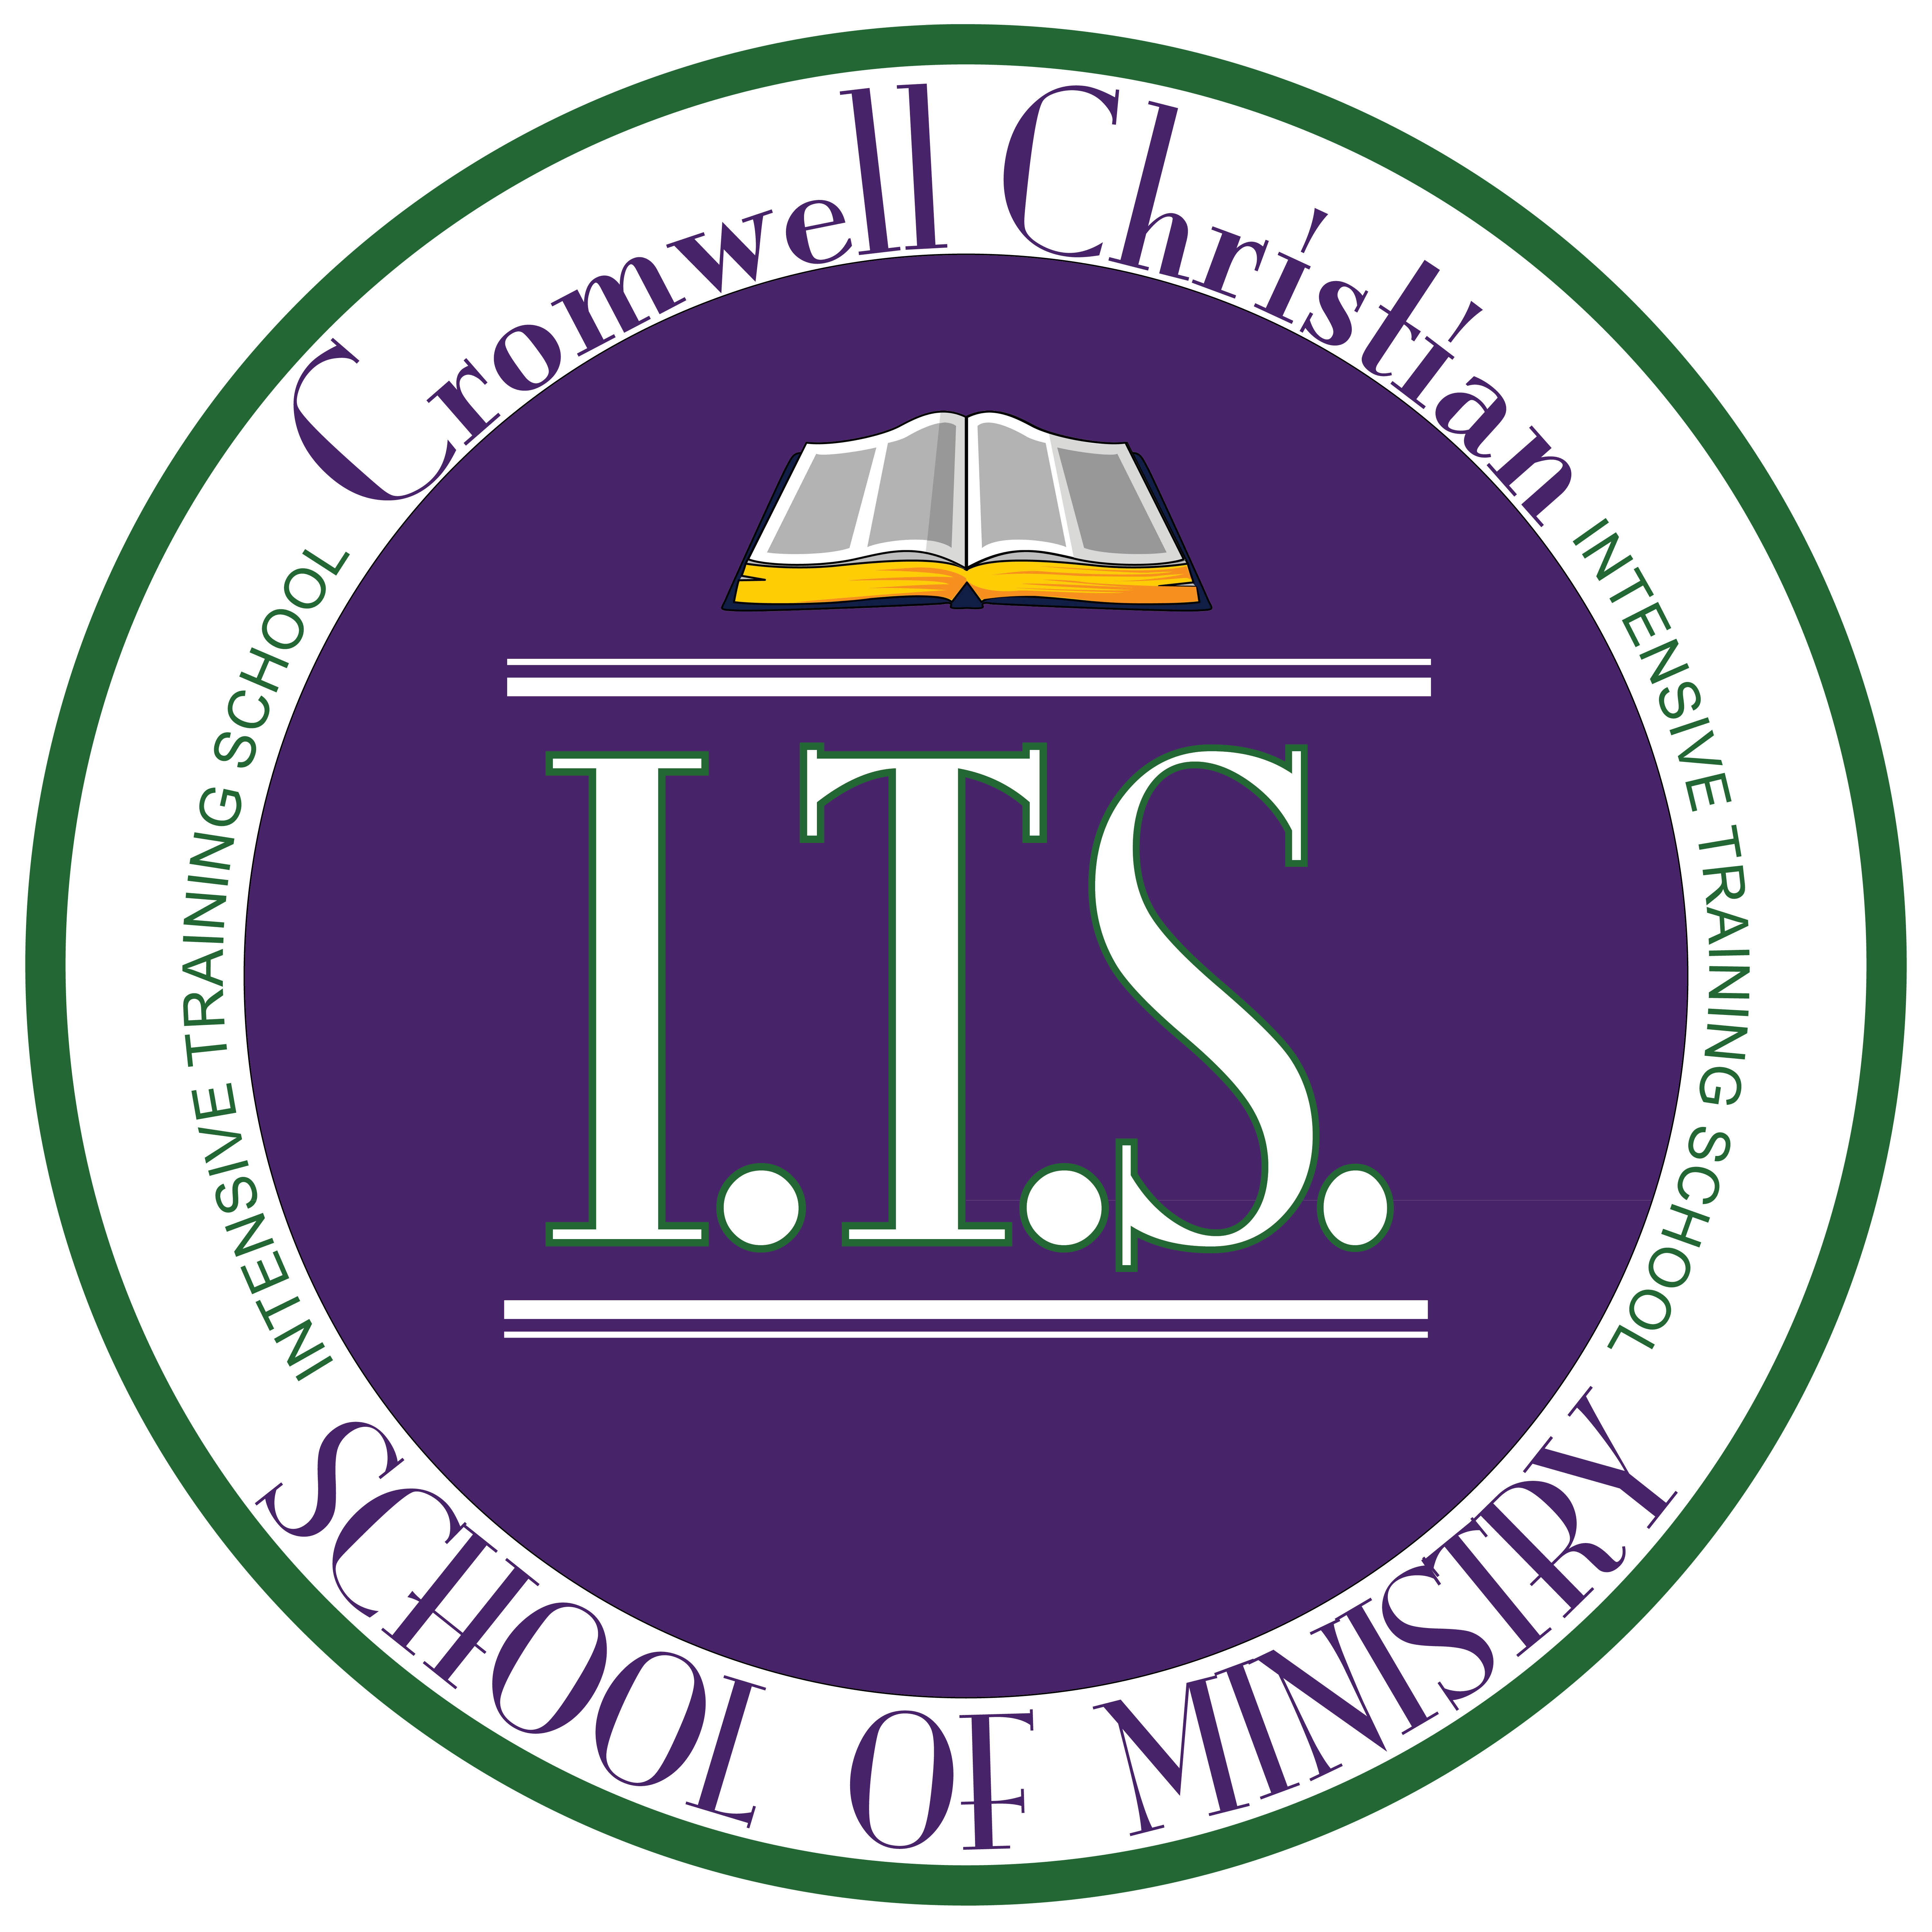 Cromwell Christian School of Ministry